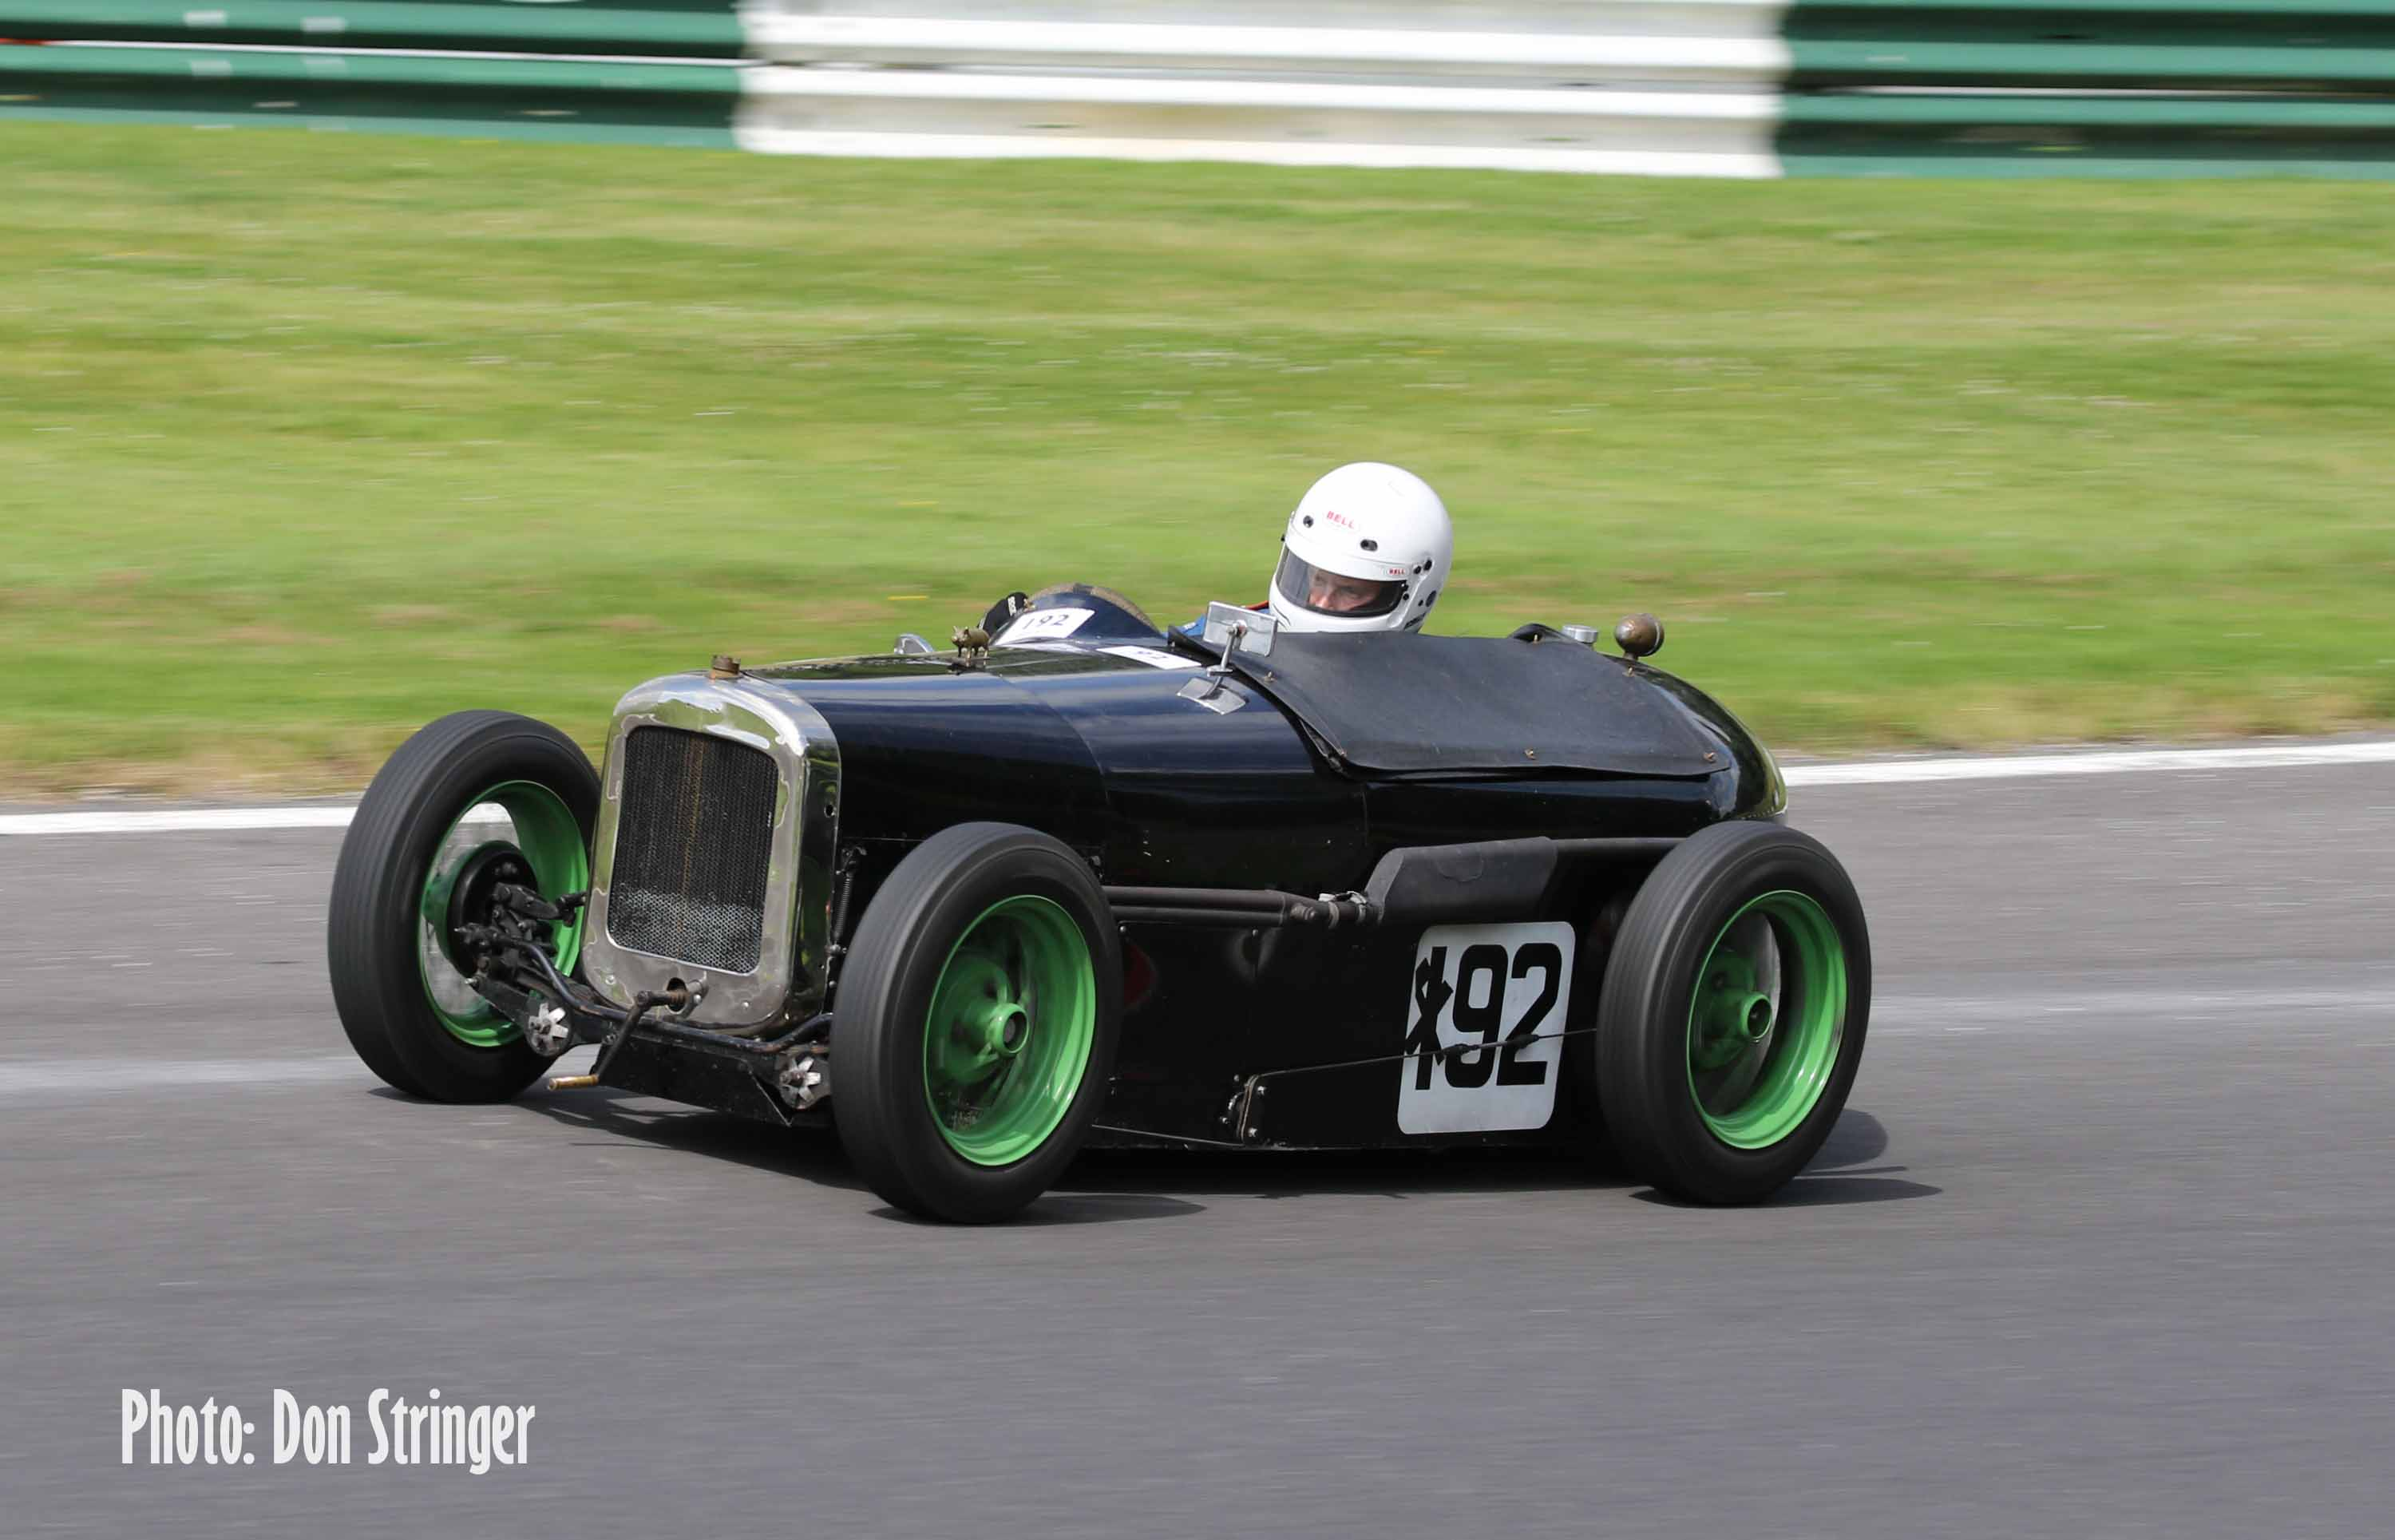 Teenager Tom steals the show at another Vintage Cadwell cover